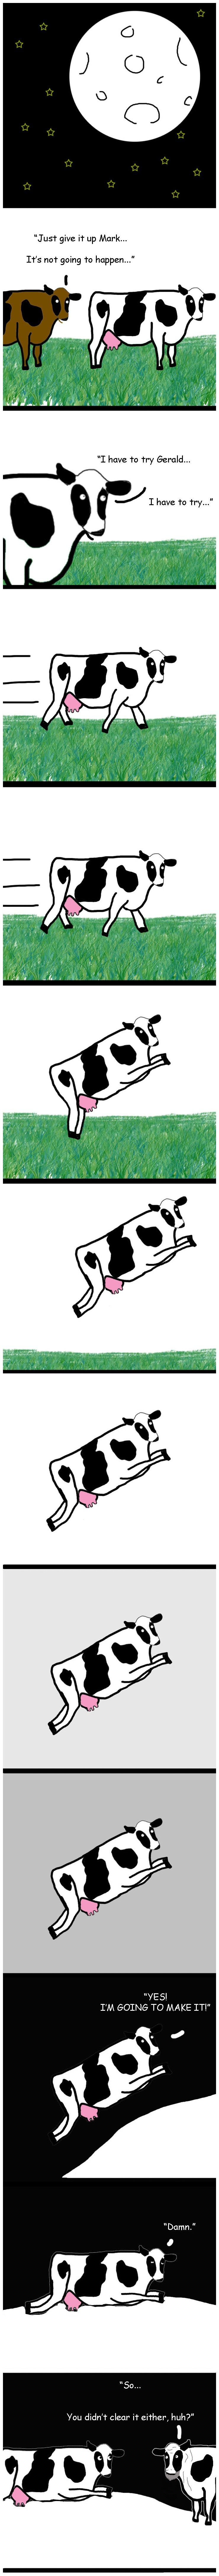 """Those Darn Cows. . Just give it up Mark... It' s not going to happen..."""" YES! I' M GOING TO MAKE IT!"""" You didn"""" r clear if either, huh?"""". Explains why old people said the moon was made of cheese...."""